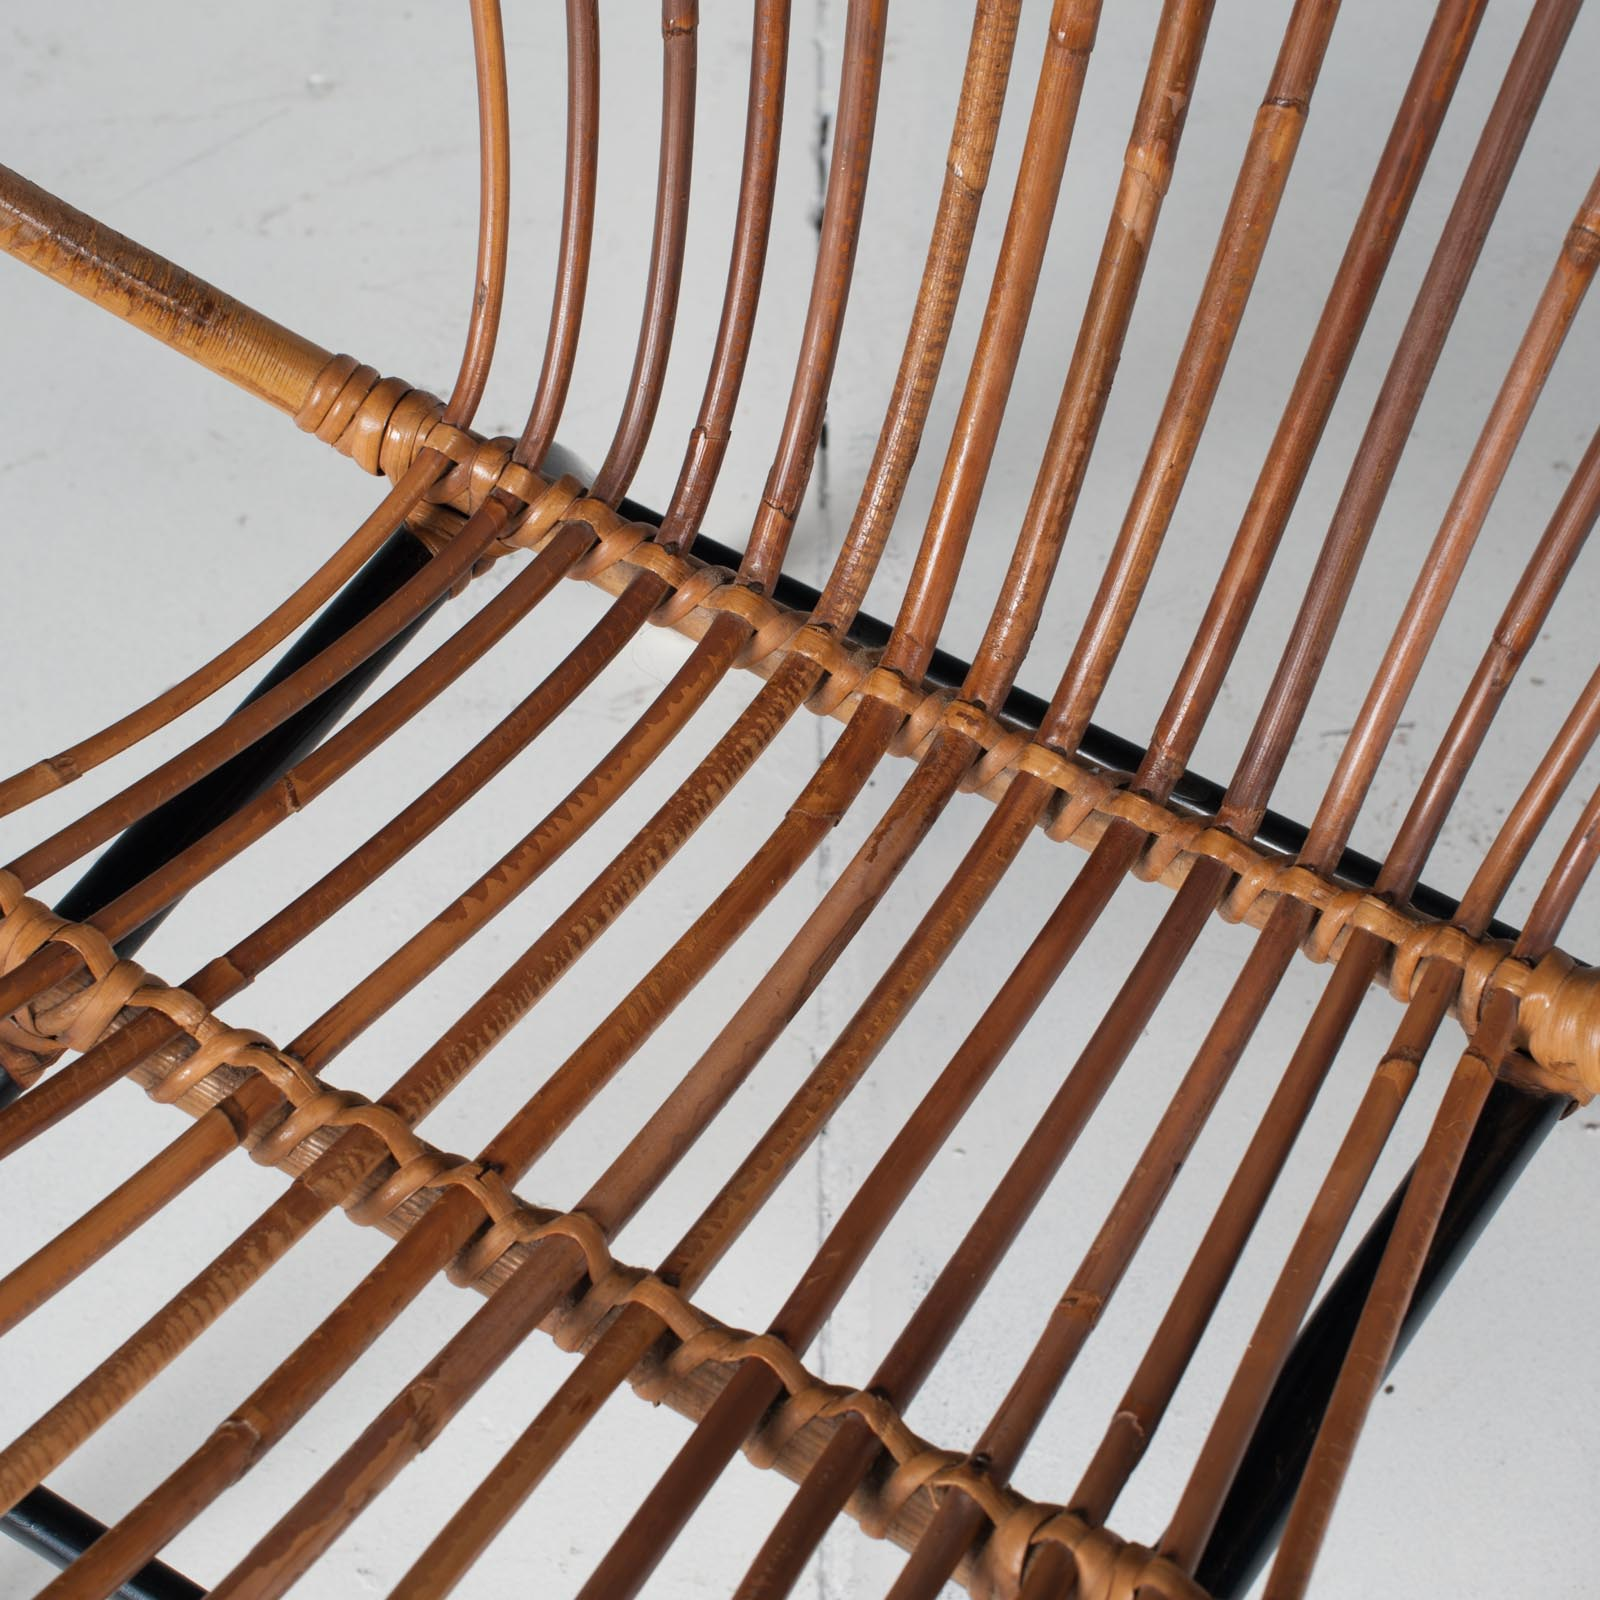 Rattan Lounge Chair By Rohe Noordwolde 1960s Netherlands 08